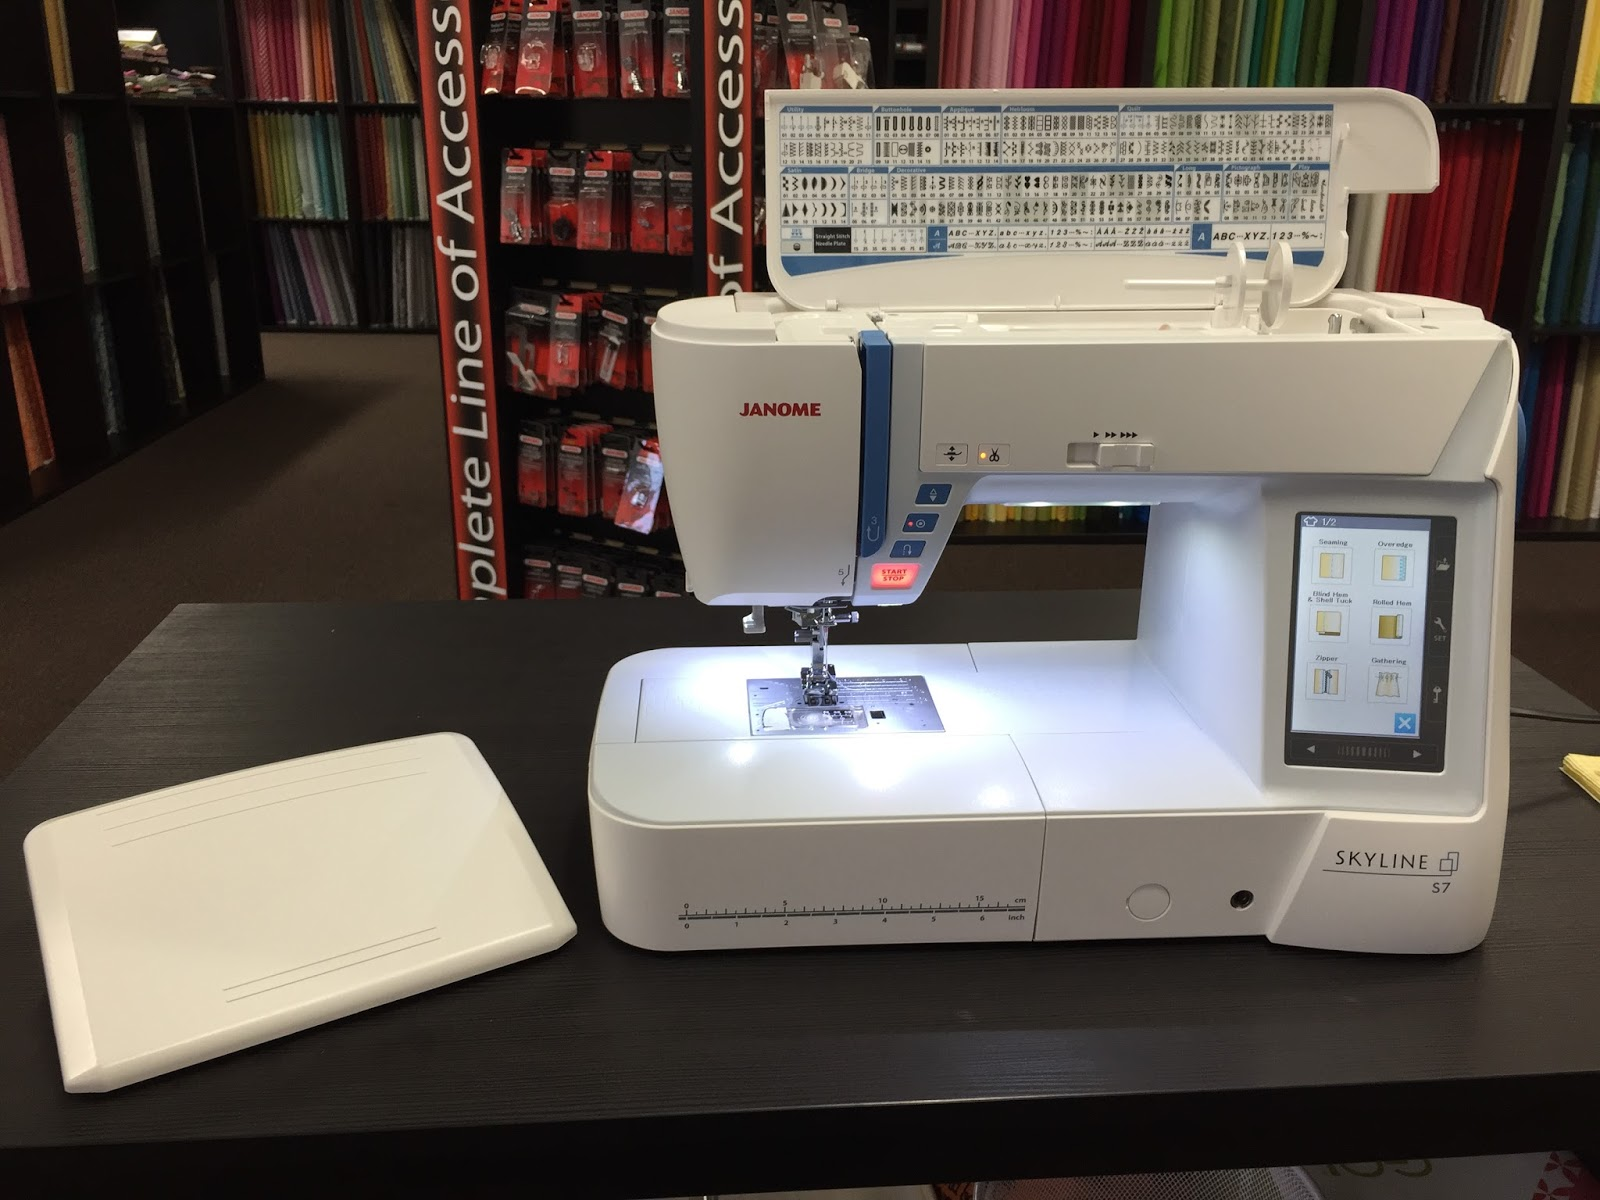 machine this best quilters is sewing the quilt for janome quilting review